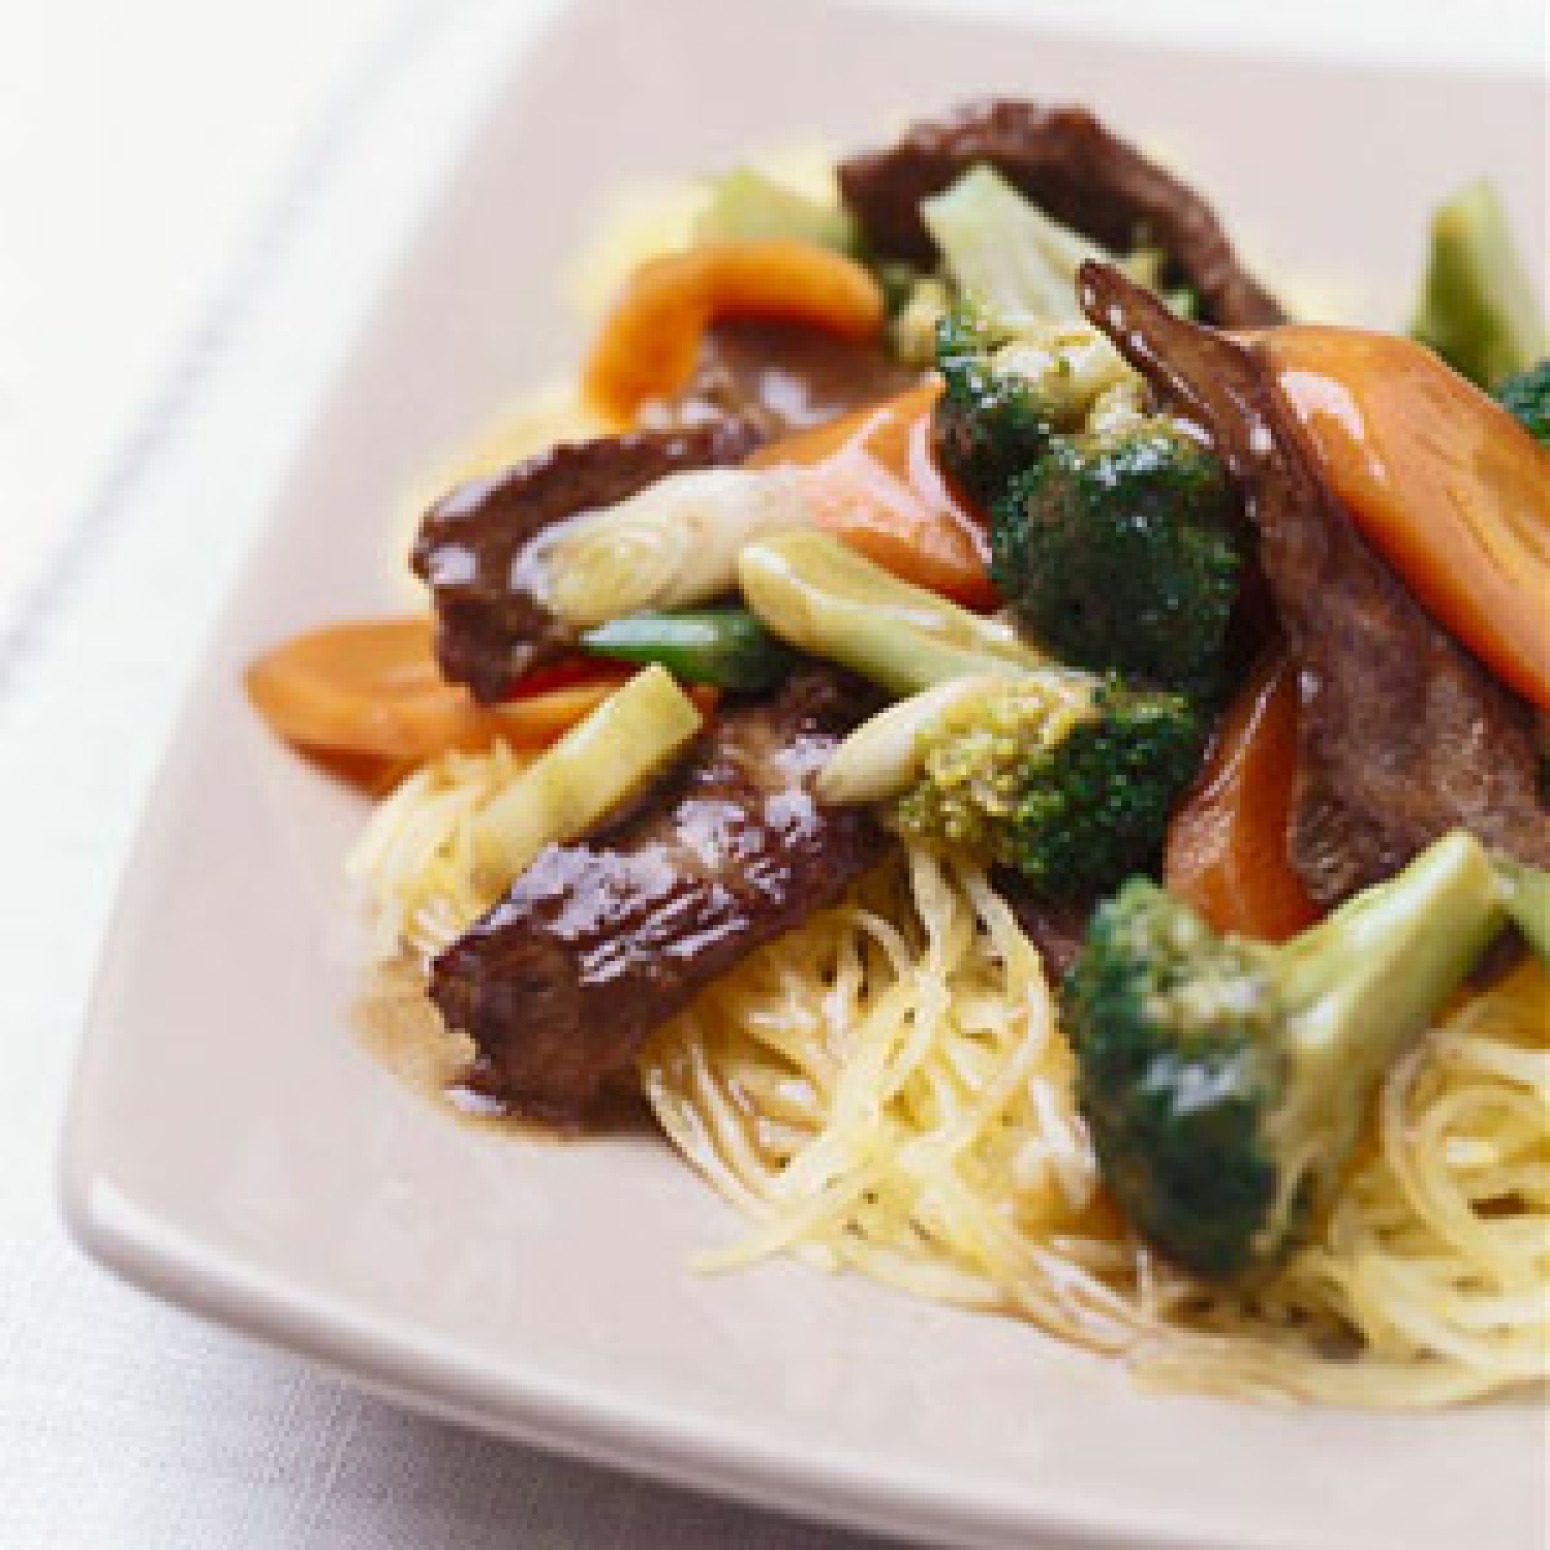 Beef-Broccoli Stir-Fry Recipe 5 | Just A Pinch Recipes